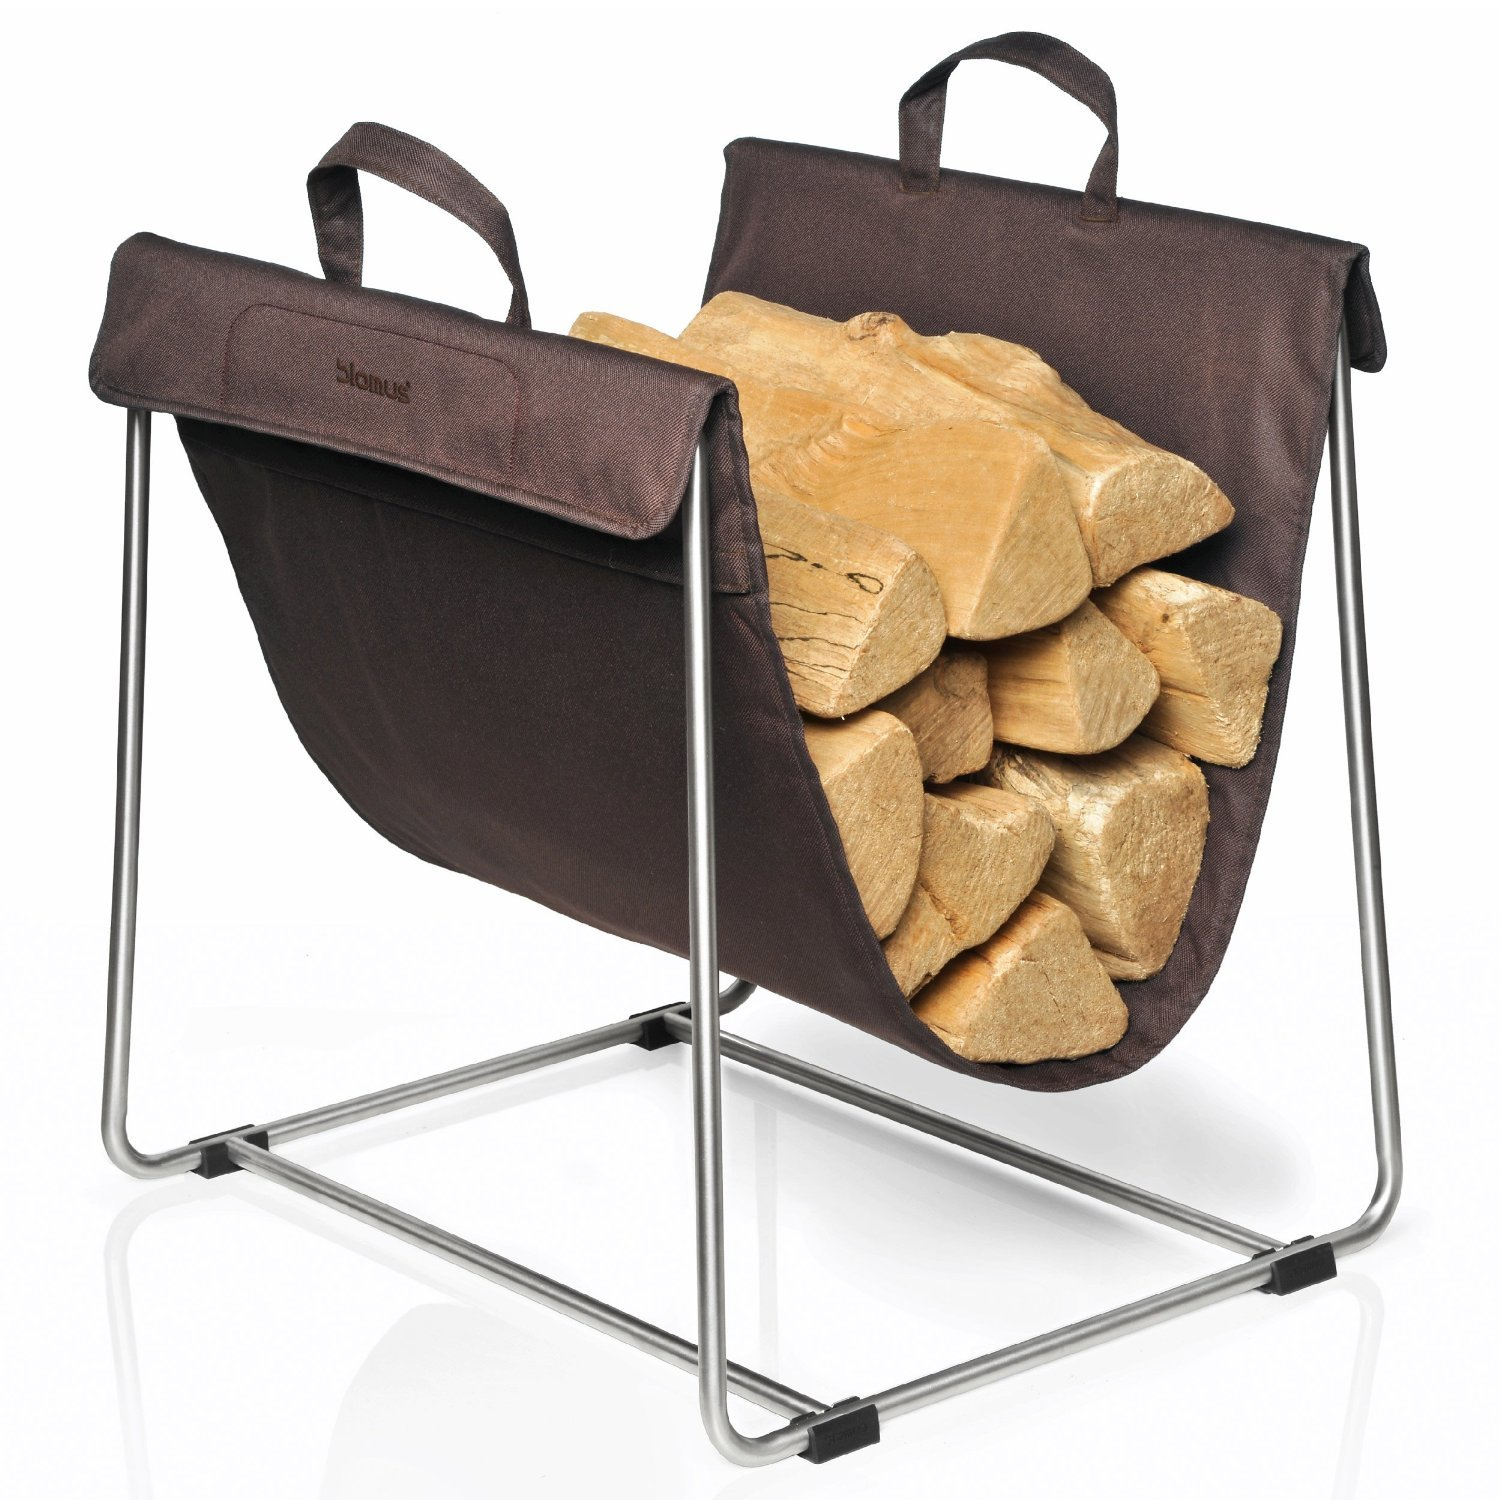 Blomus Madra Log Basket, Brown 65385